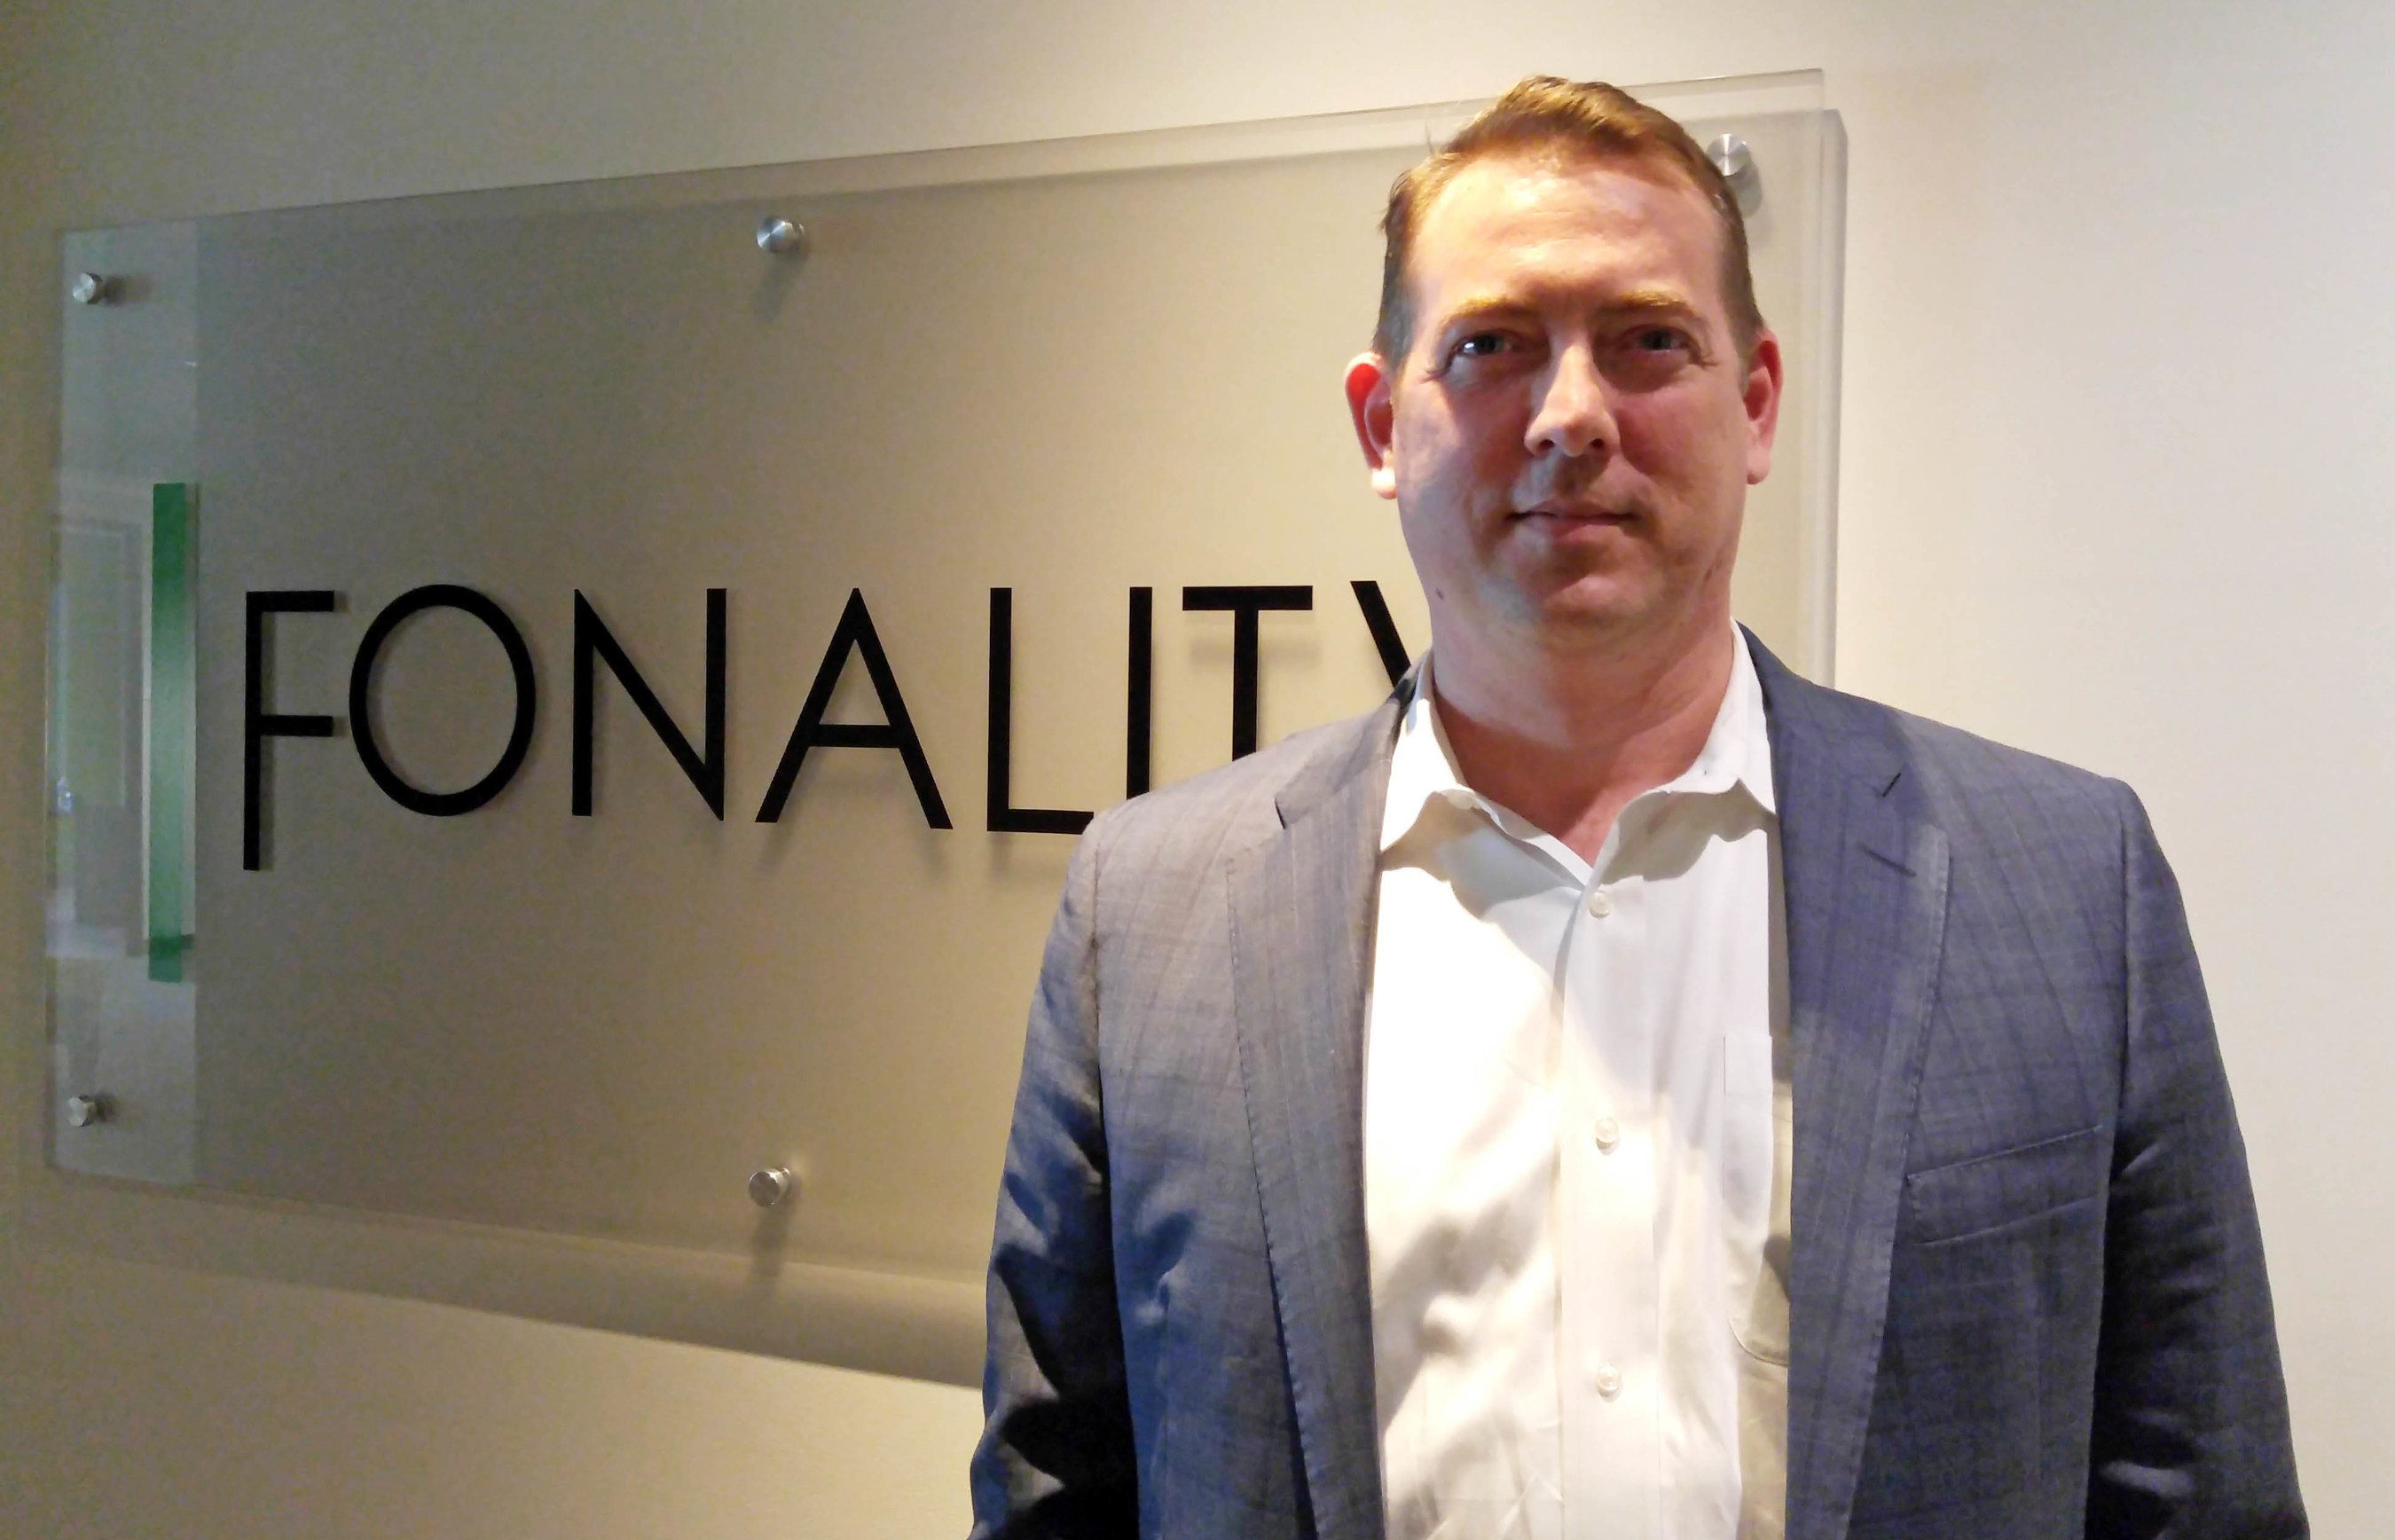 Fonality Hires David Beagle to Lead Channel Development